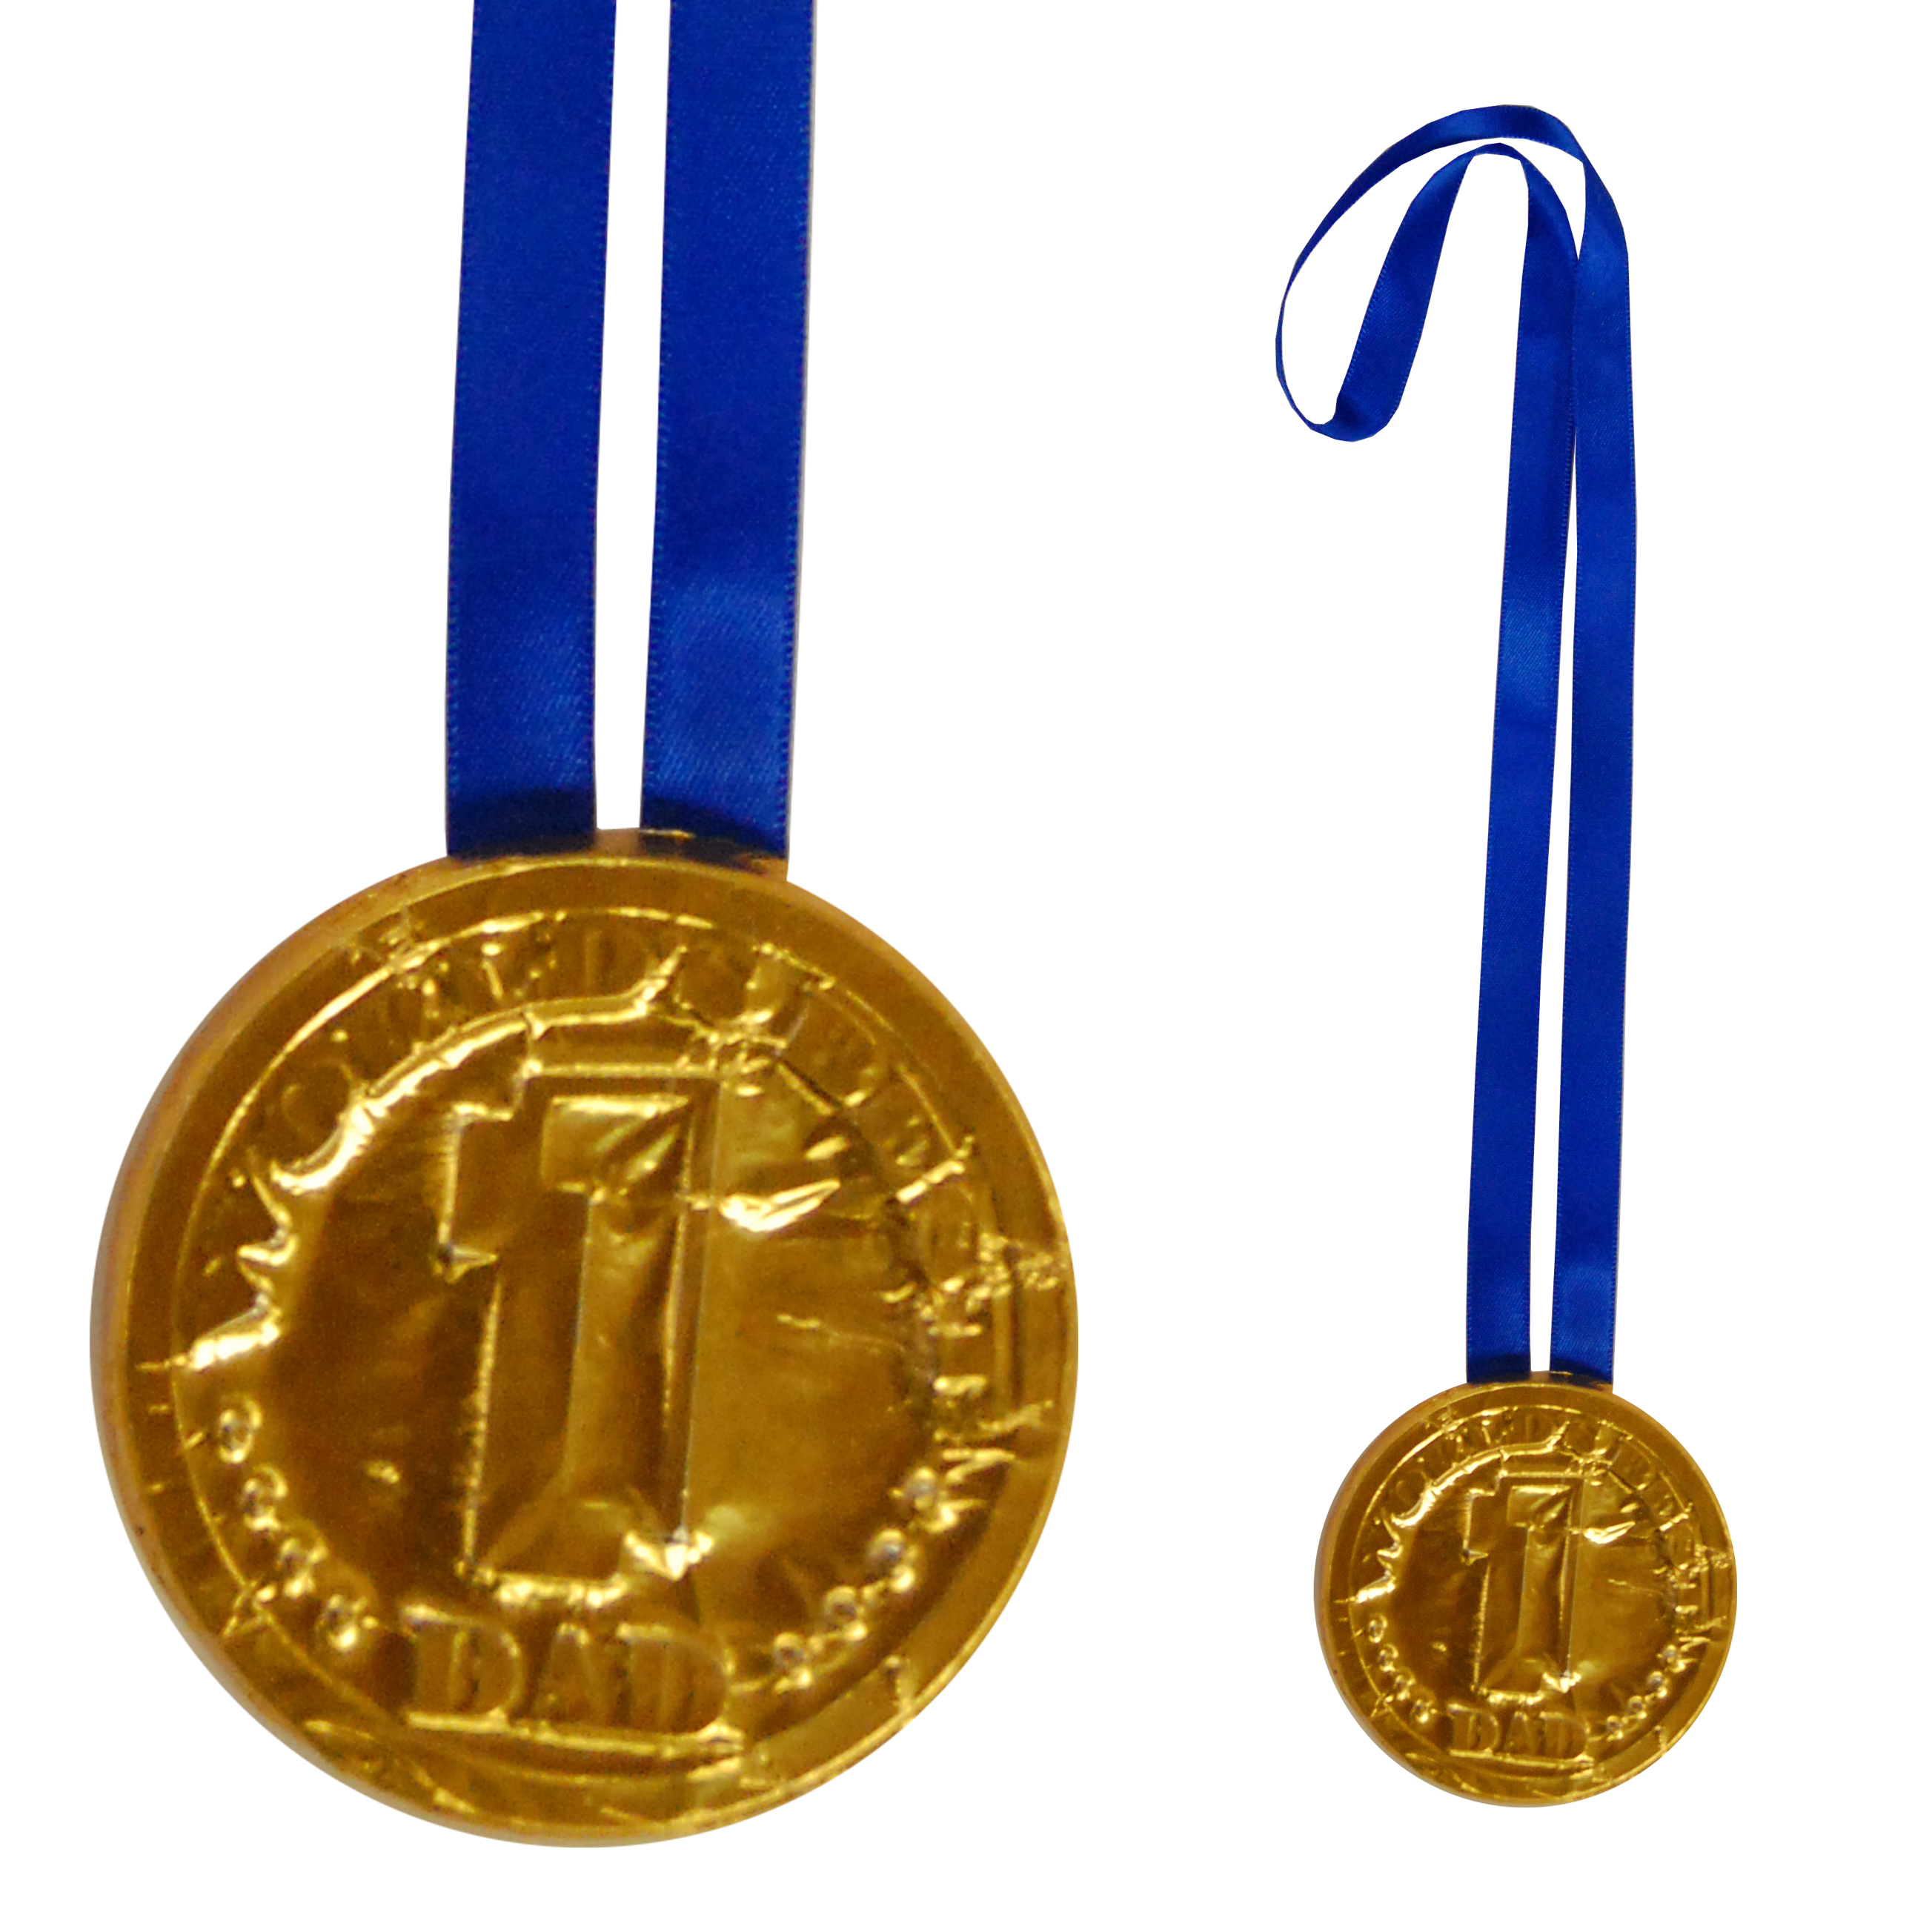 Fathers Day Chocolate Medals